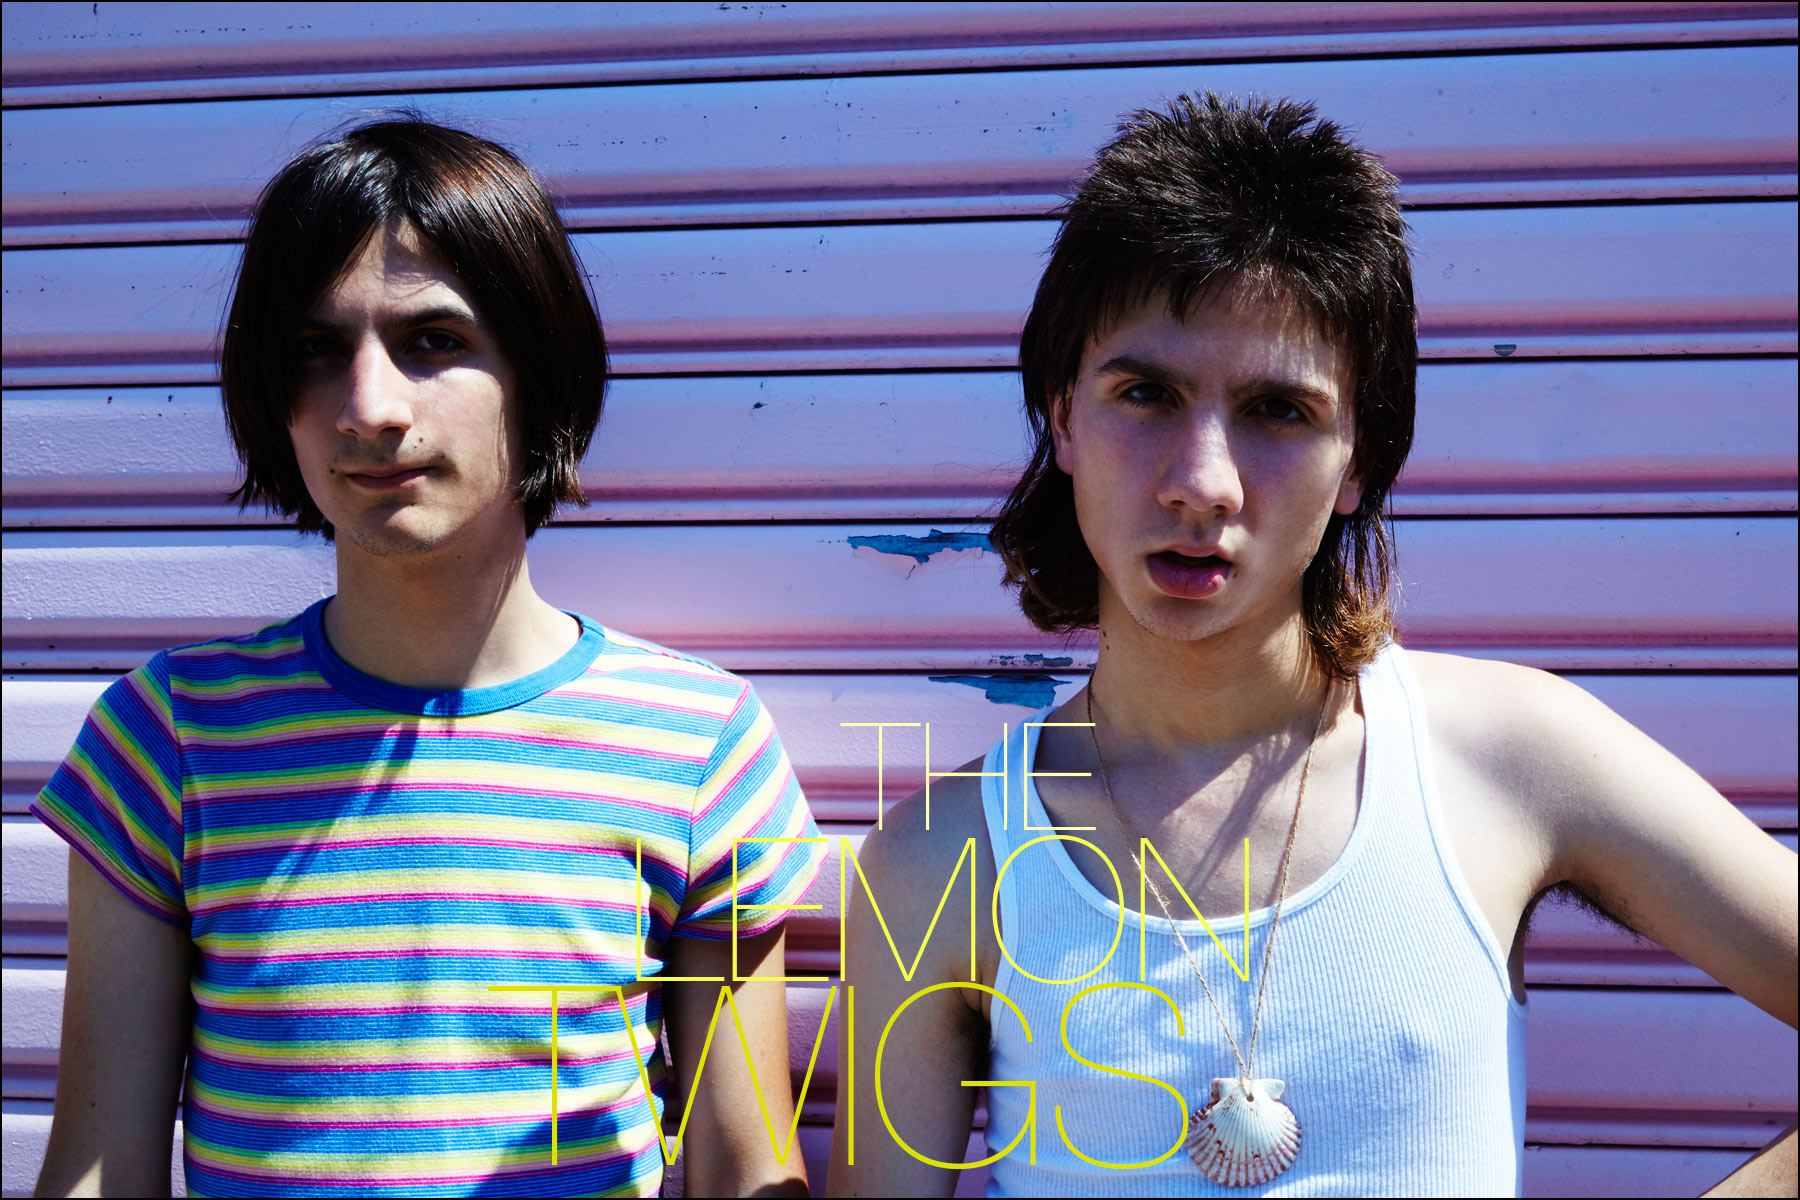 The Lemon Twigs photographed by Alexander Thompson, for Ponyboy magazine in New York.